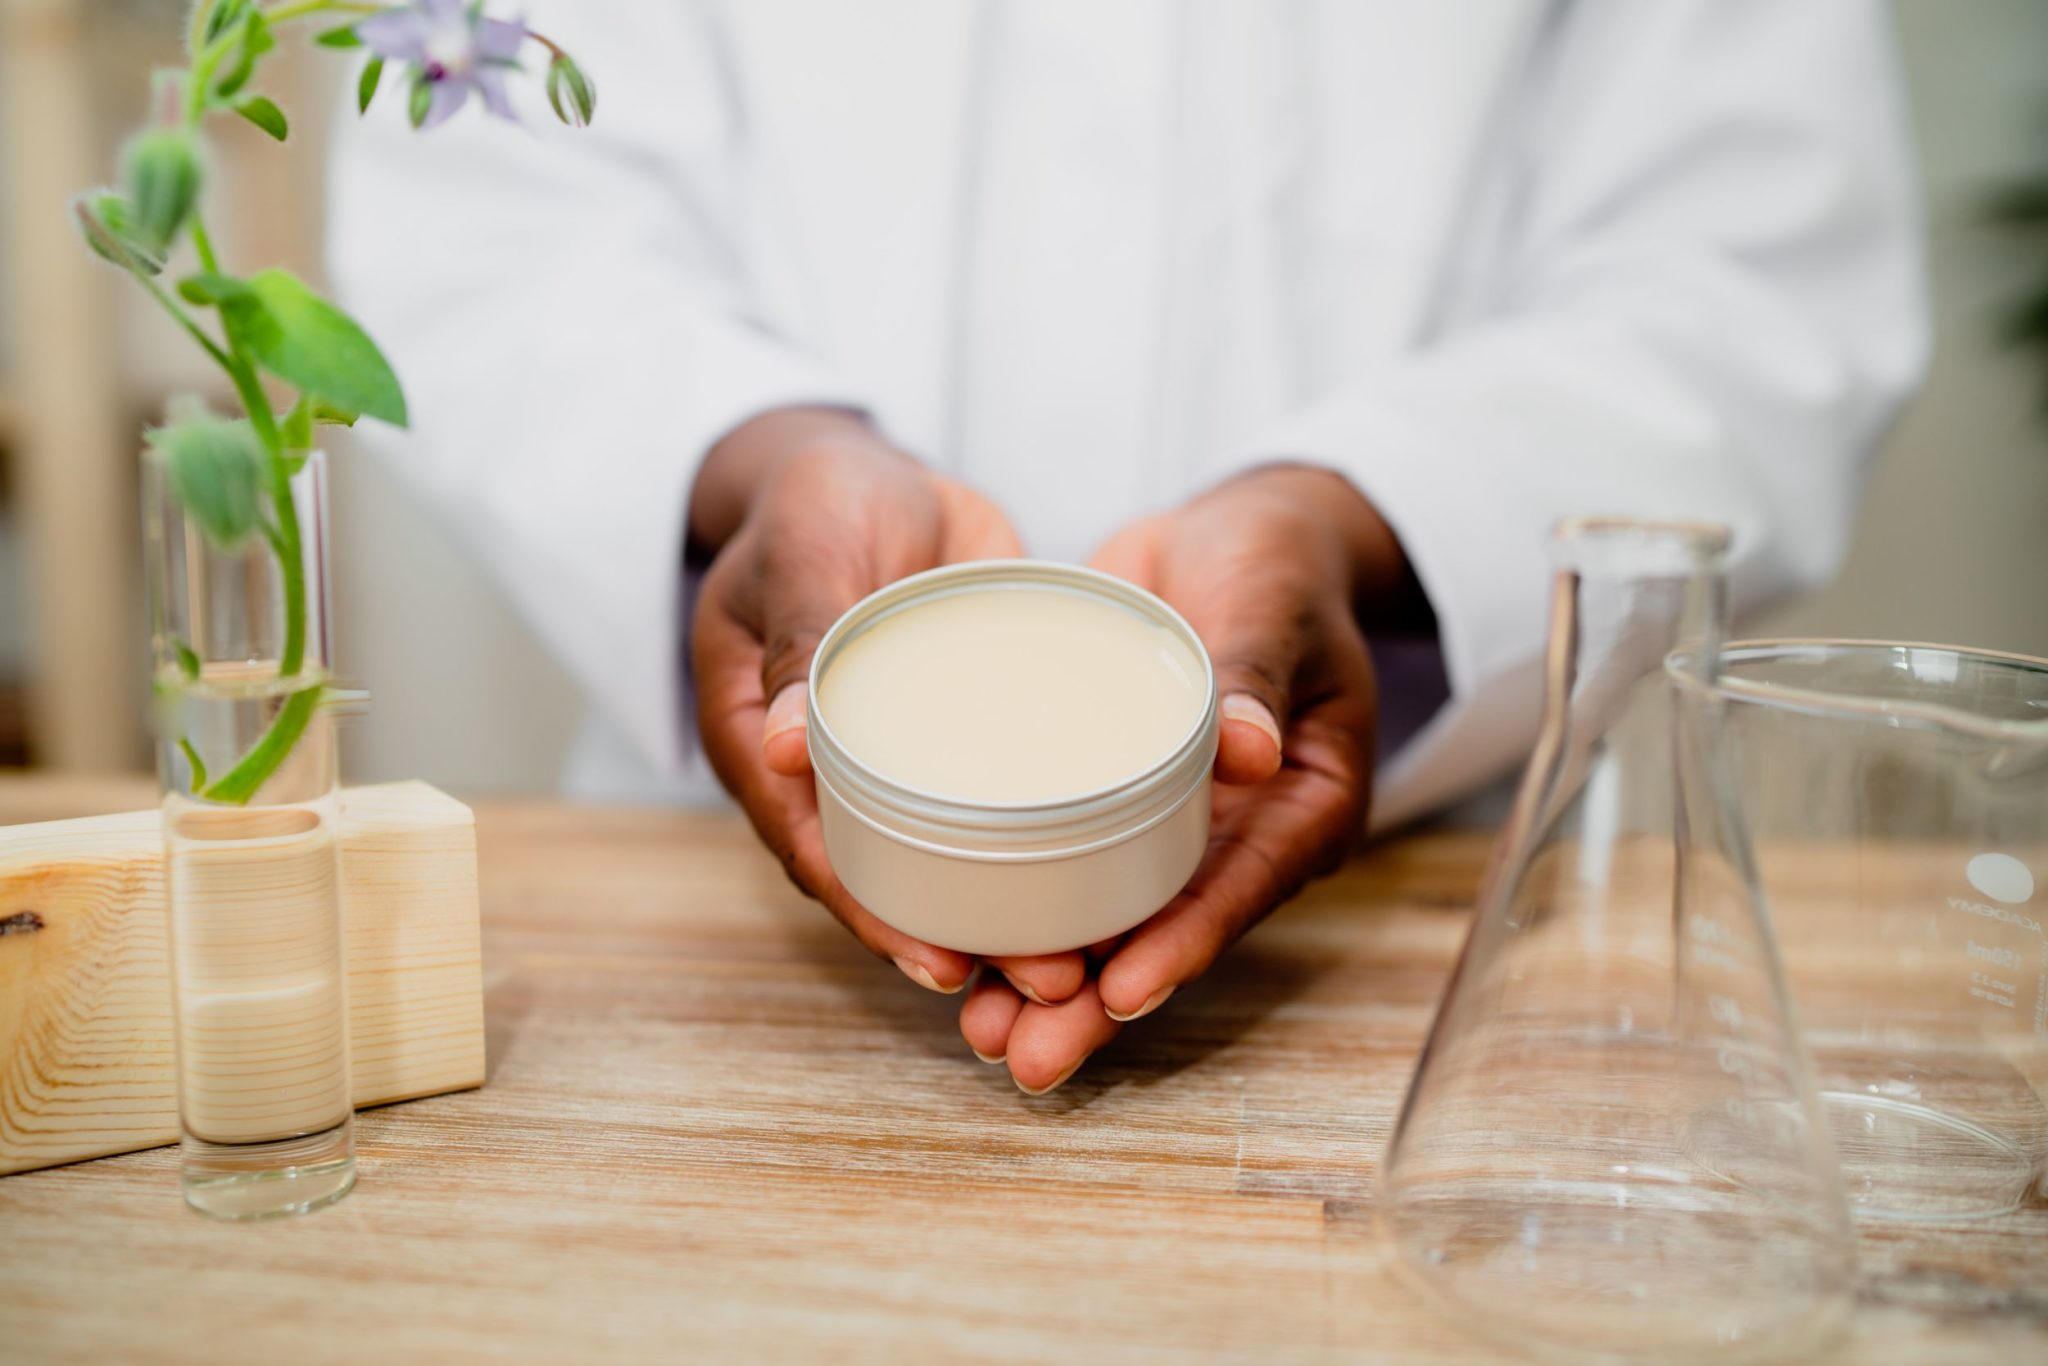 How do You Know What Ingredients and Their Quantities to Use in a Natural Skincare Recipe? Getting started Skincare Formulation